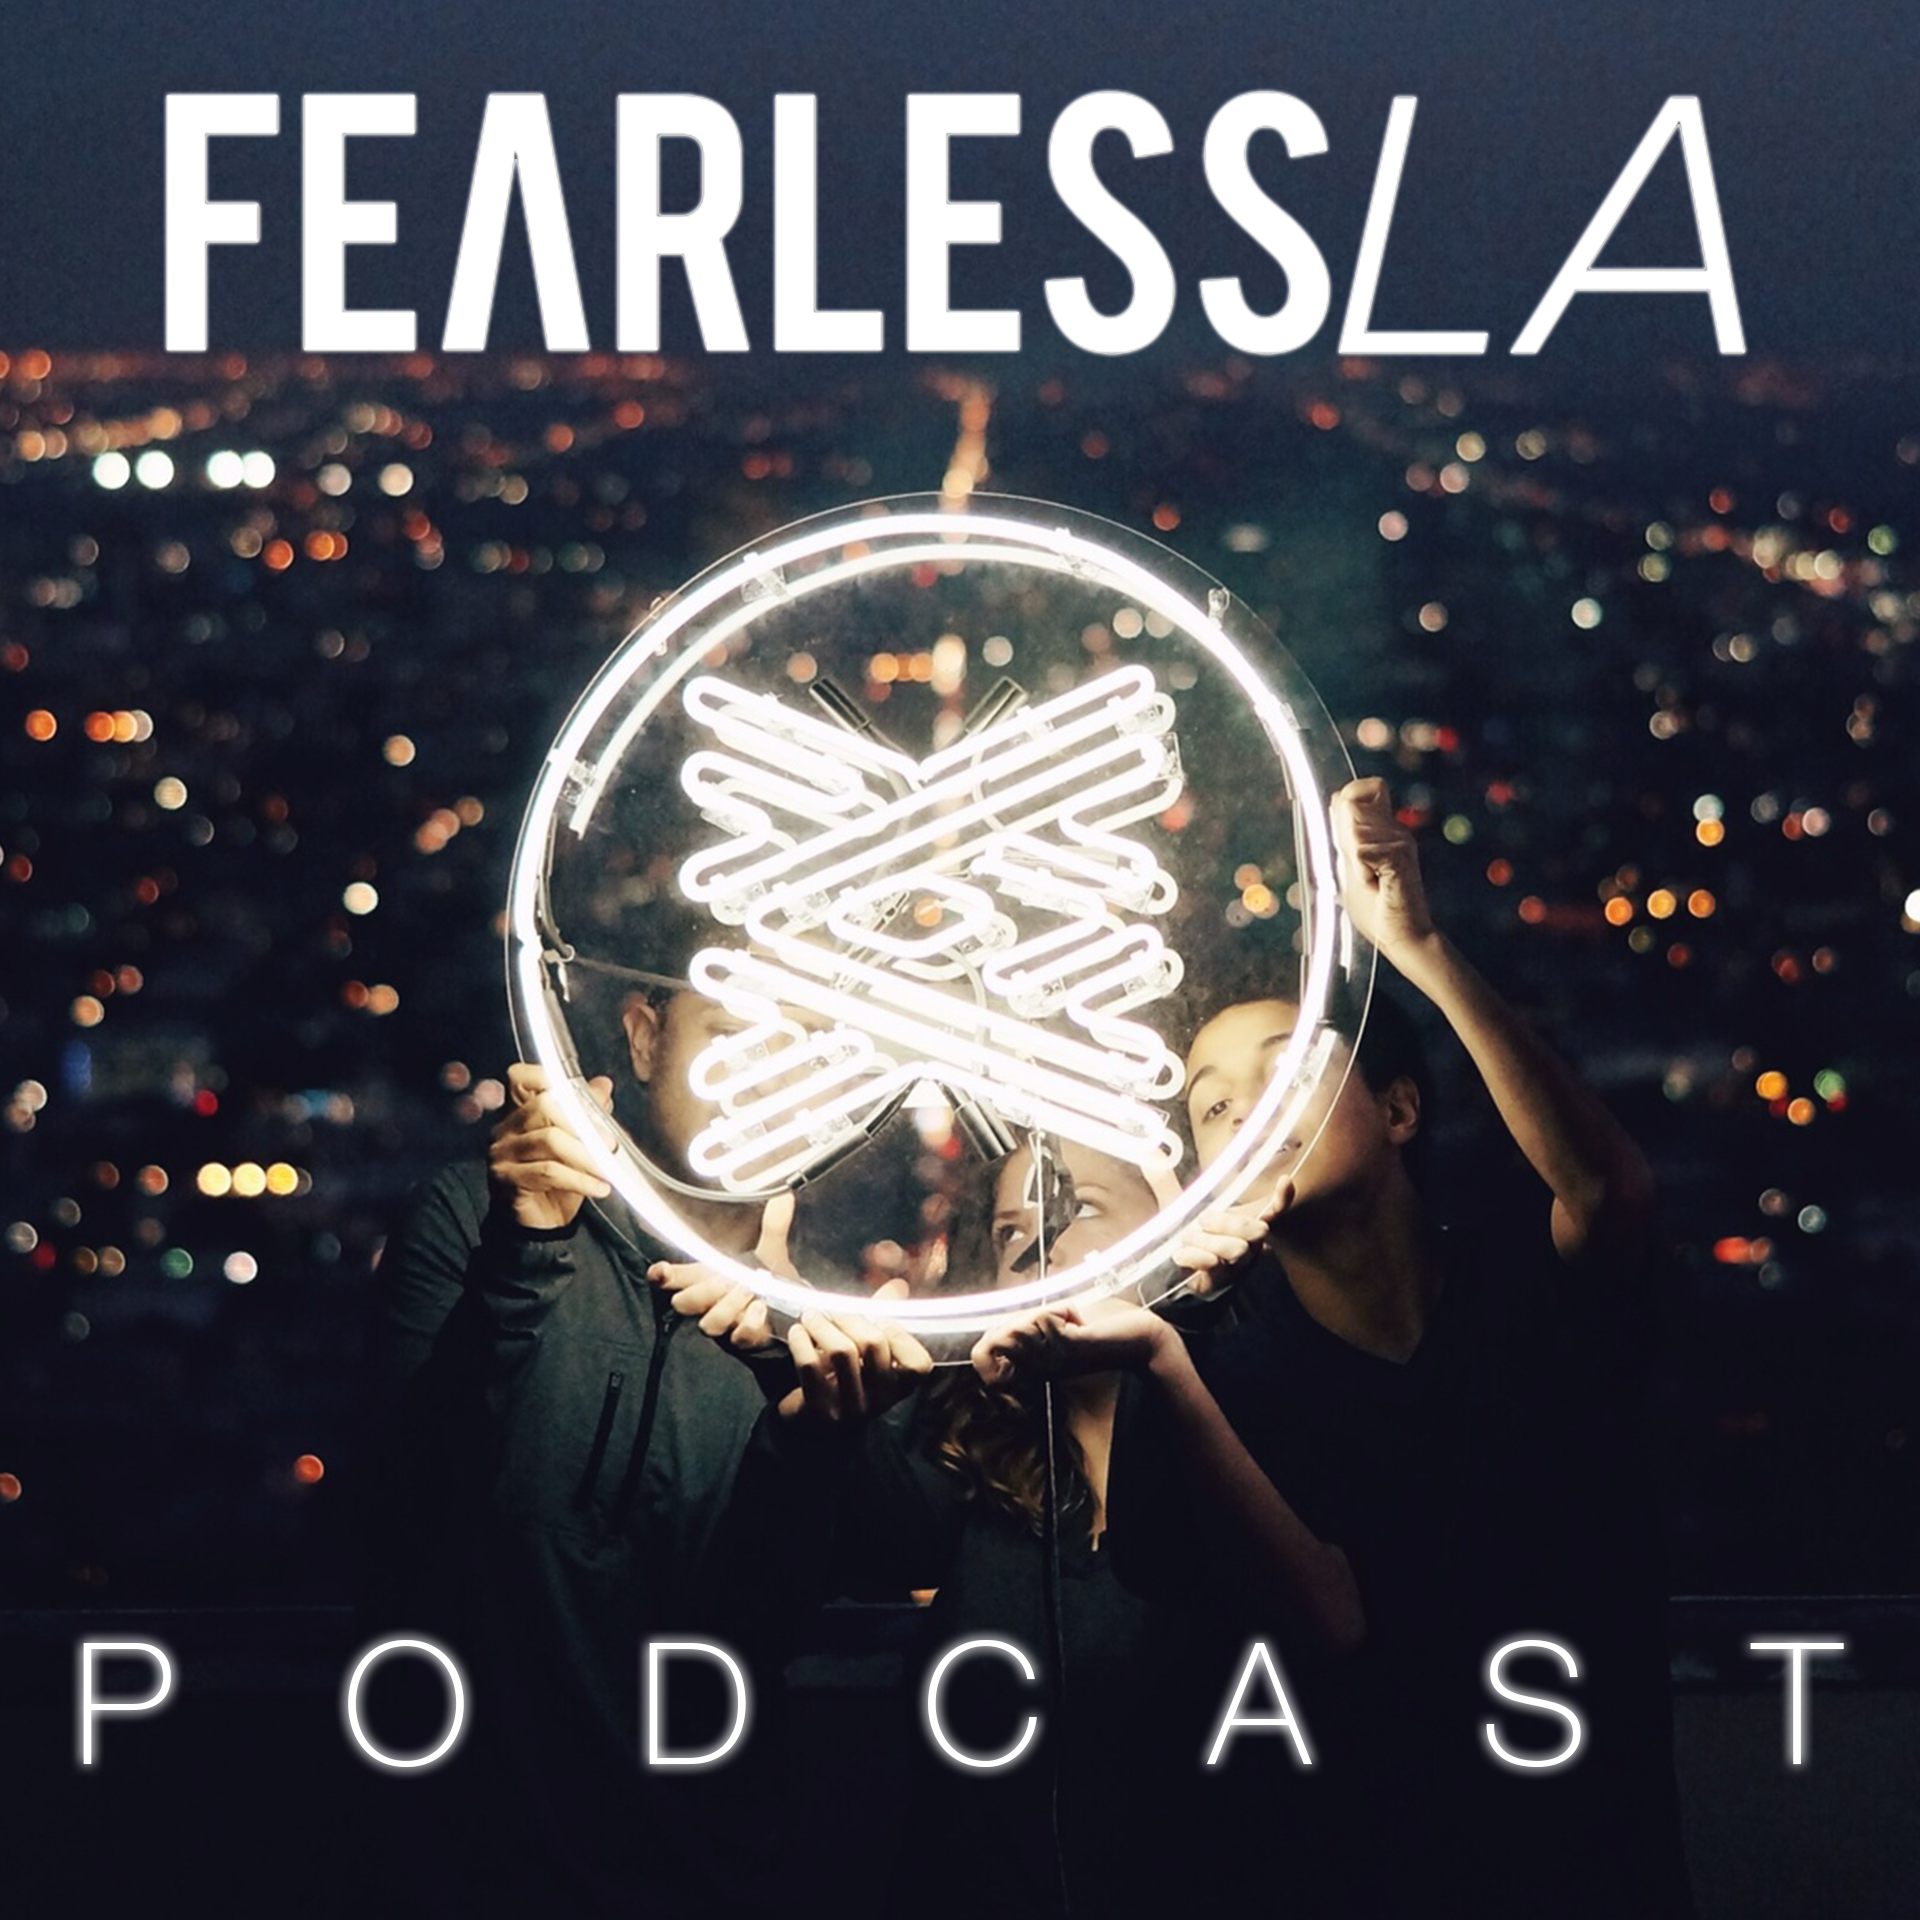 Fearless dating course download